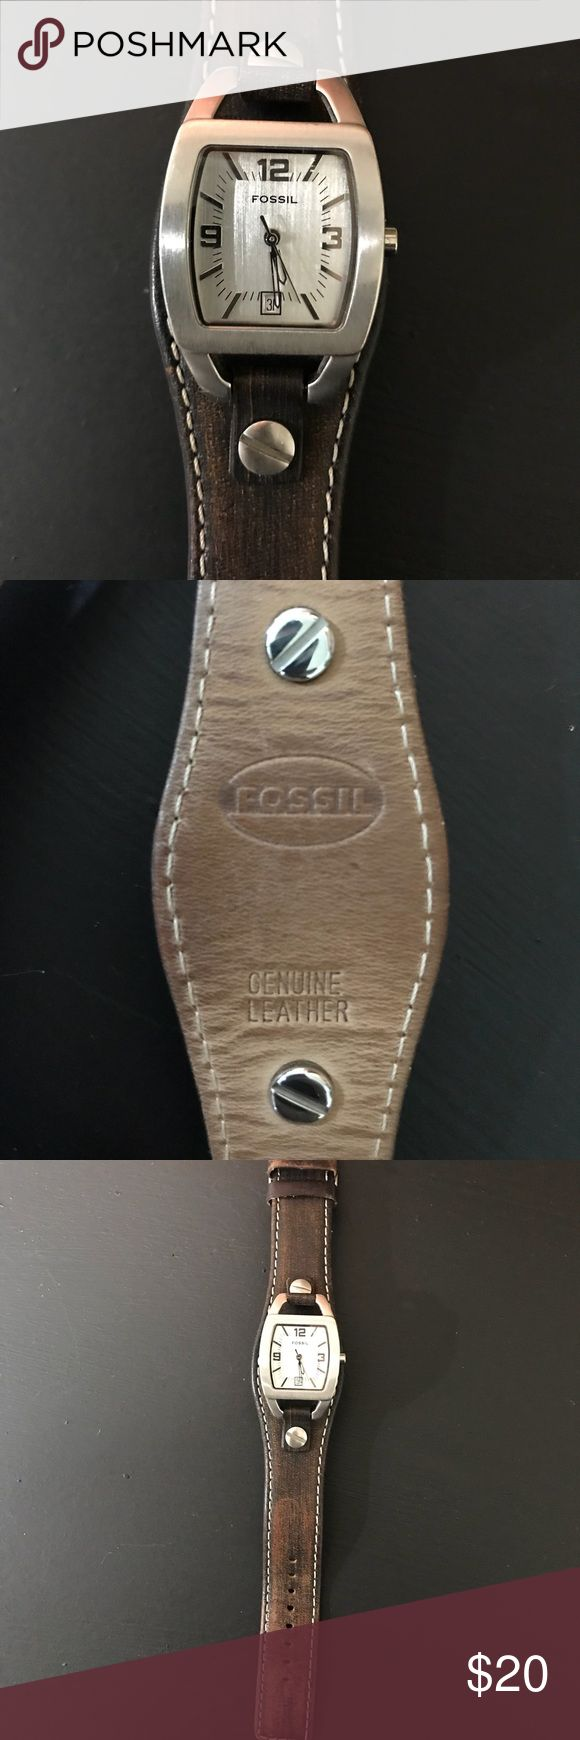 Fossil Leather Banded Watch Leather banded Fossil Watch in good condition. Needs battery replacement. Comfortable design. Fossil Jewelry